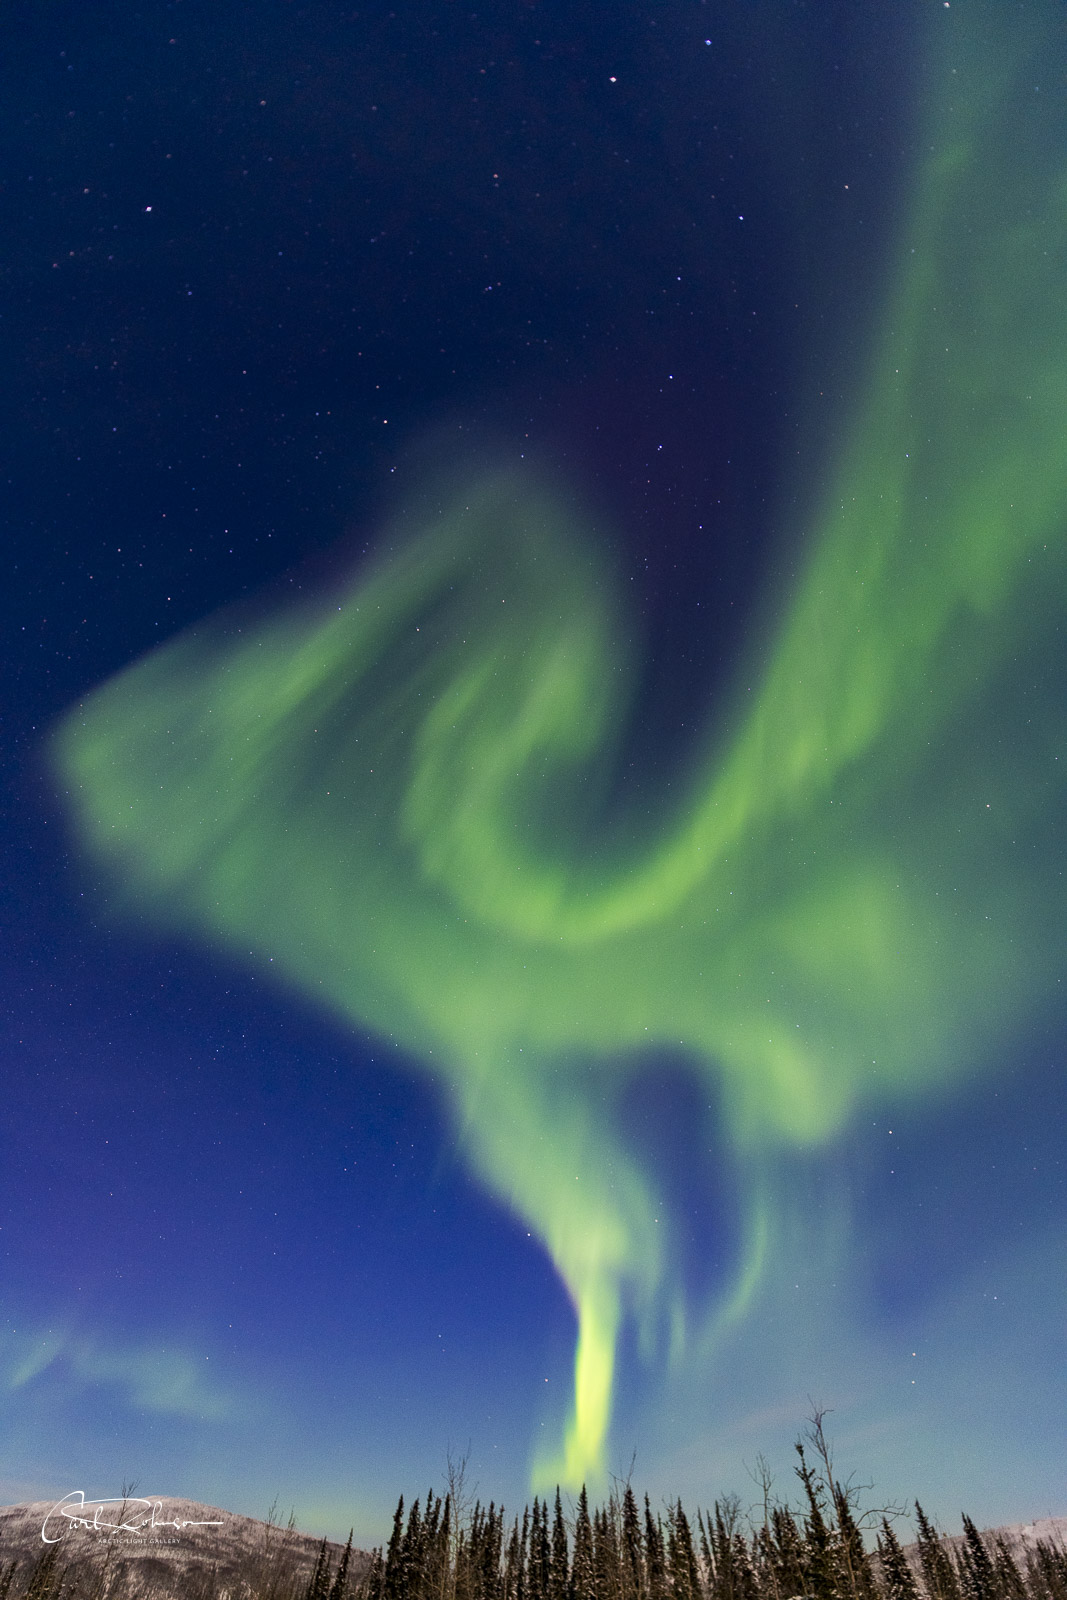 Aurora watching can sometimes be like watching for shapes in the clouds. Here, a towering formation of the aurora borealis seems...